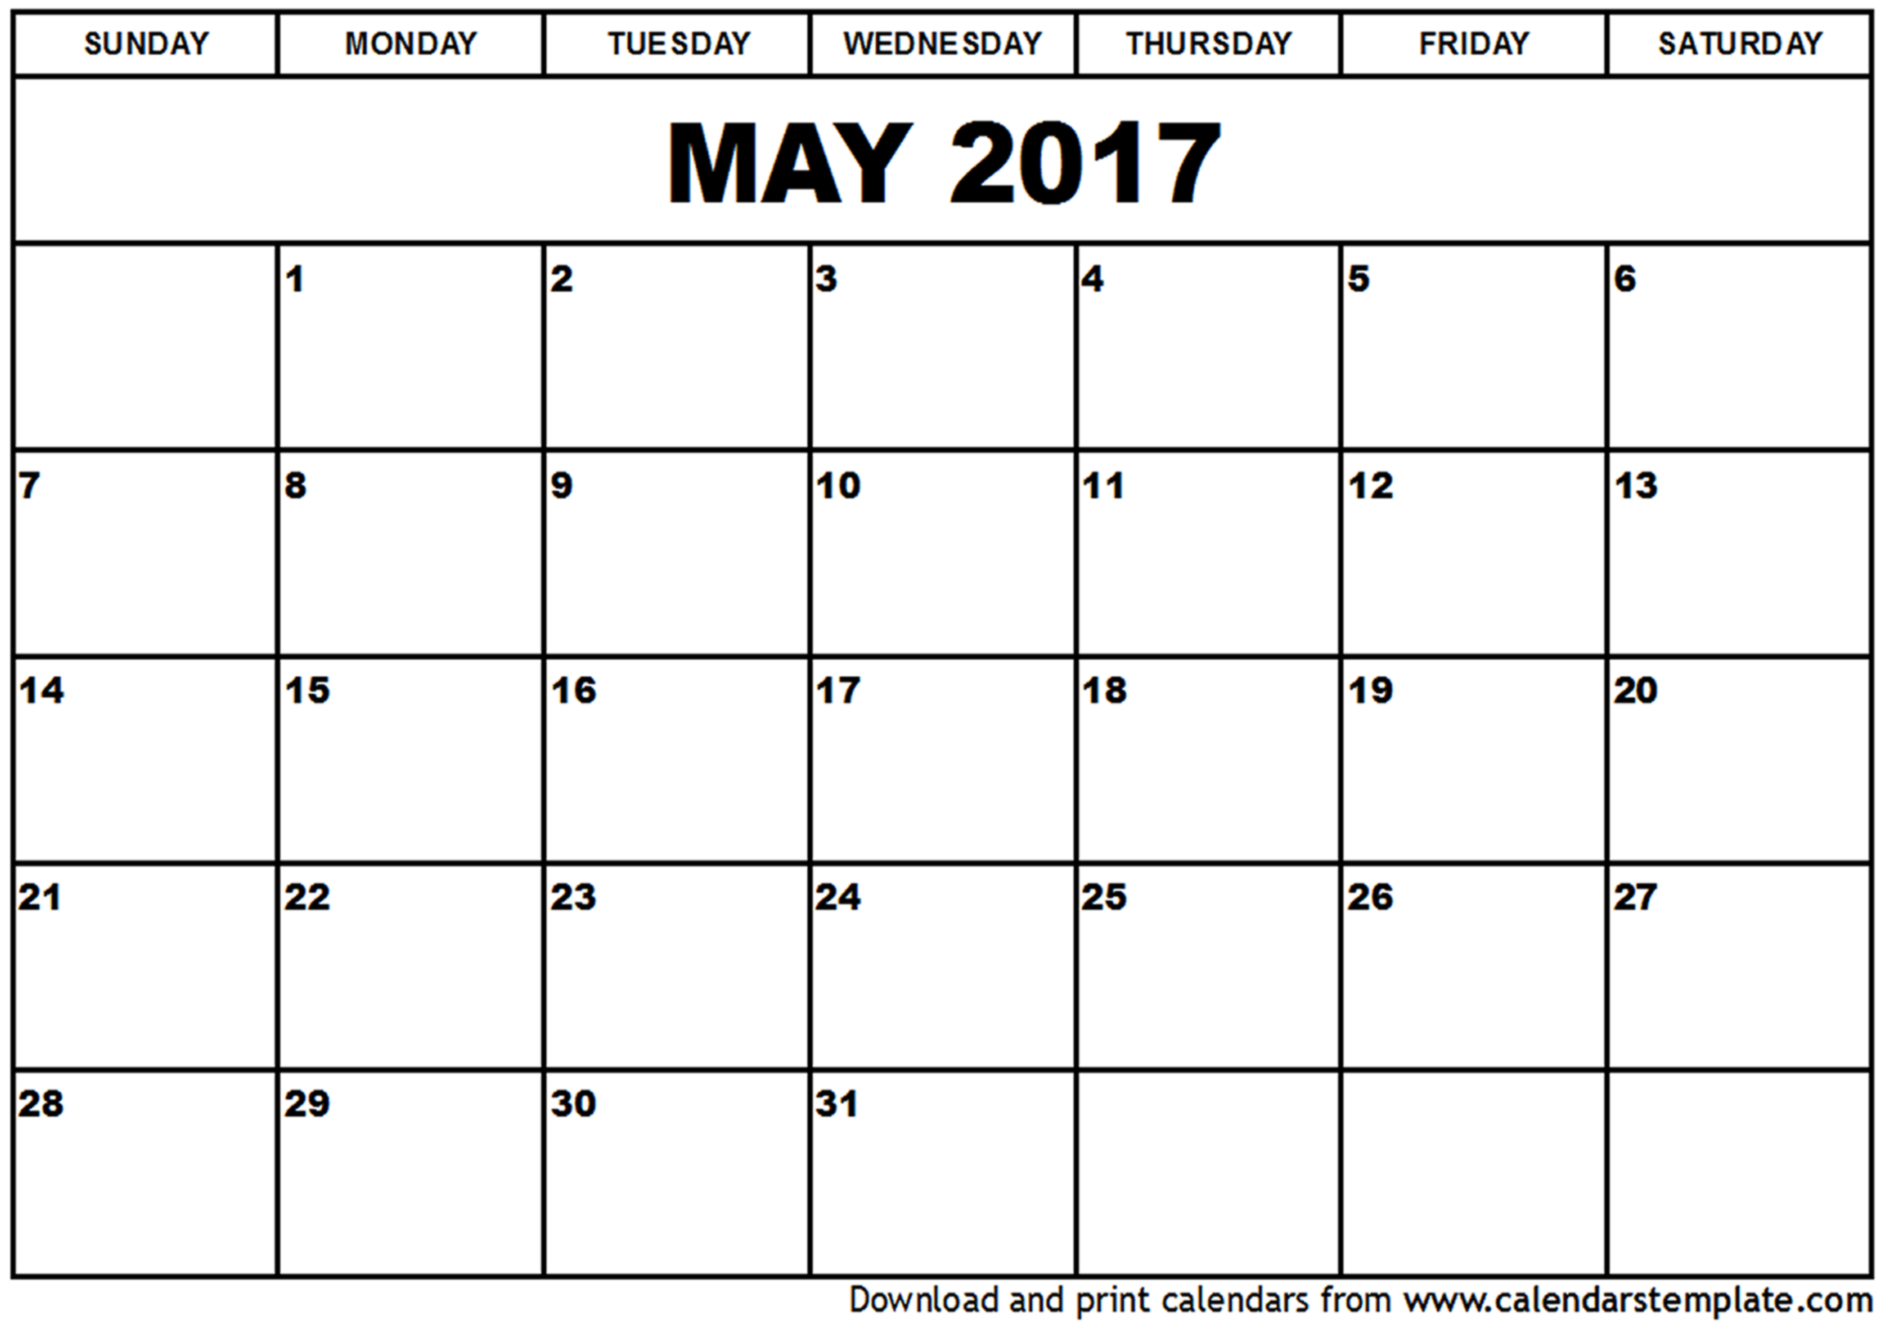 May 2017 Calendar Uk | 2017 calendar with holidays